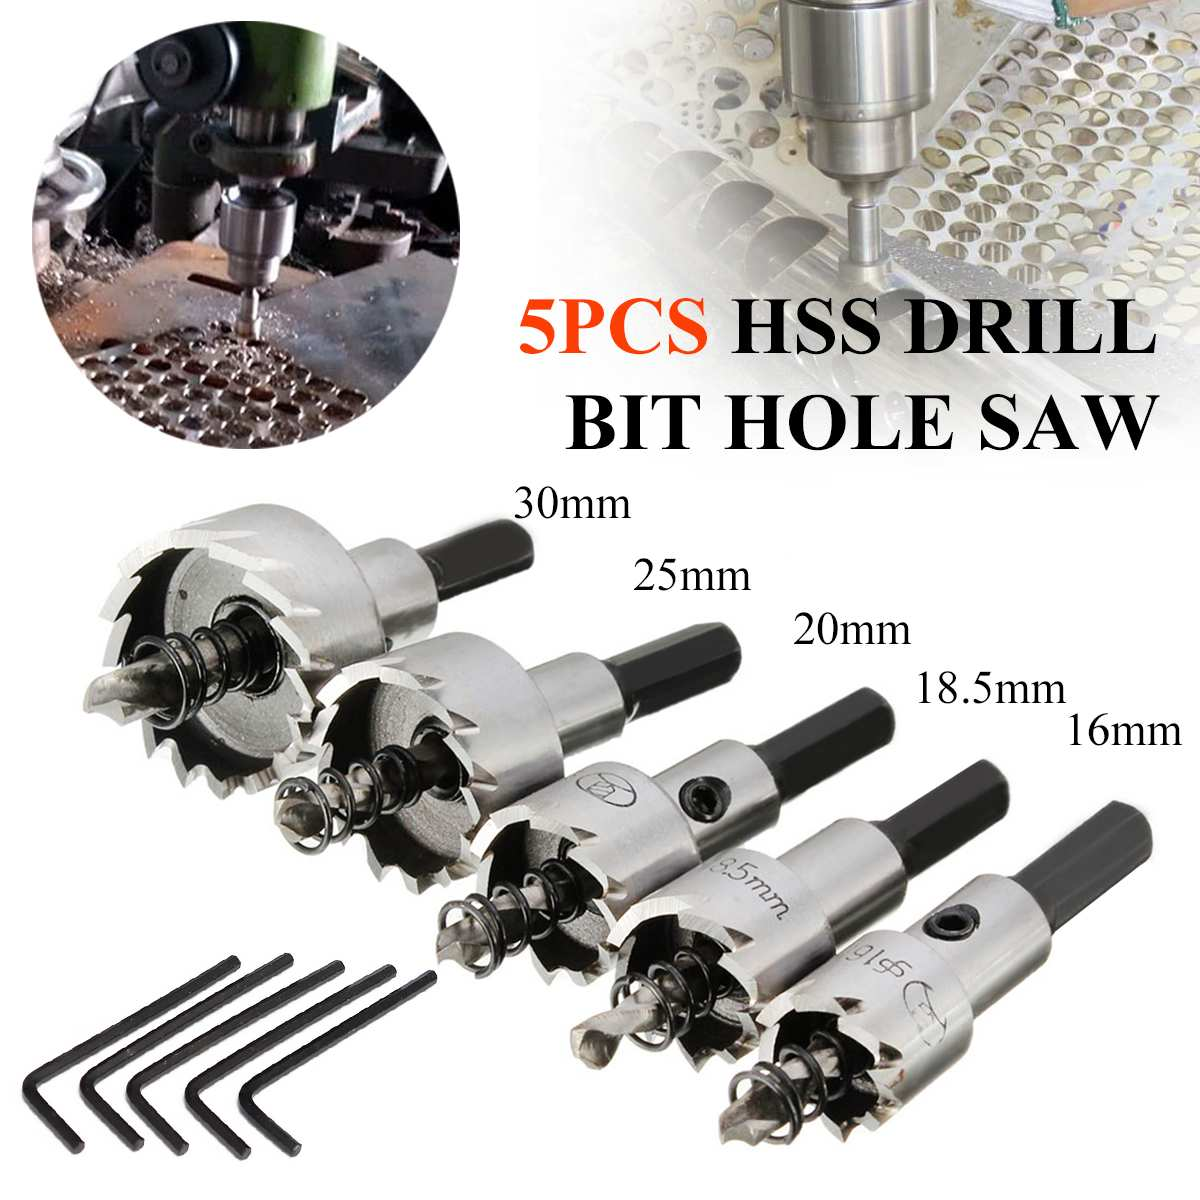 5PCS Carbide Tip HSS Drill Bit Hole Saw Set Stainless Steel Metal Alloy 16/18.5/20/25/30mm